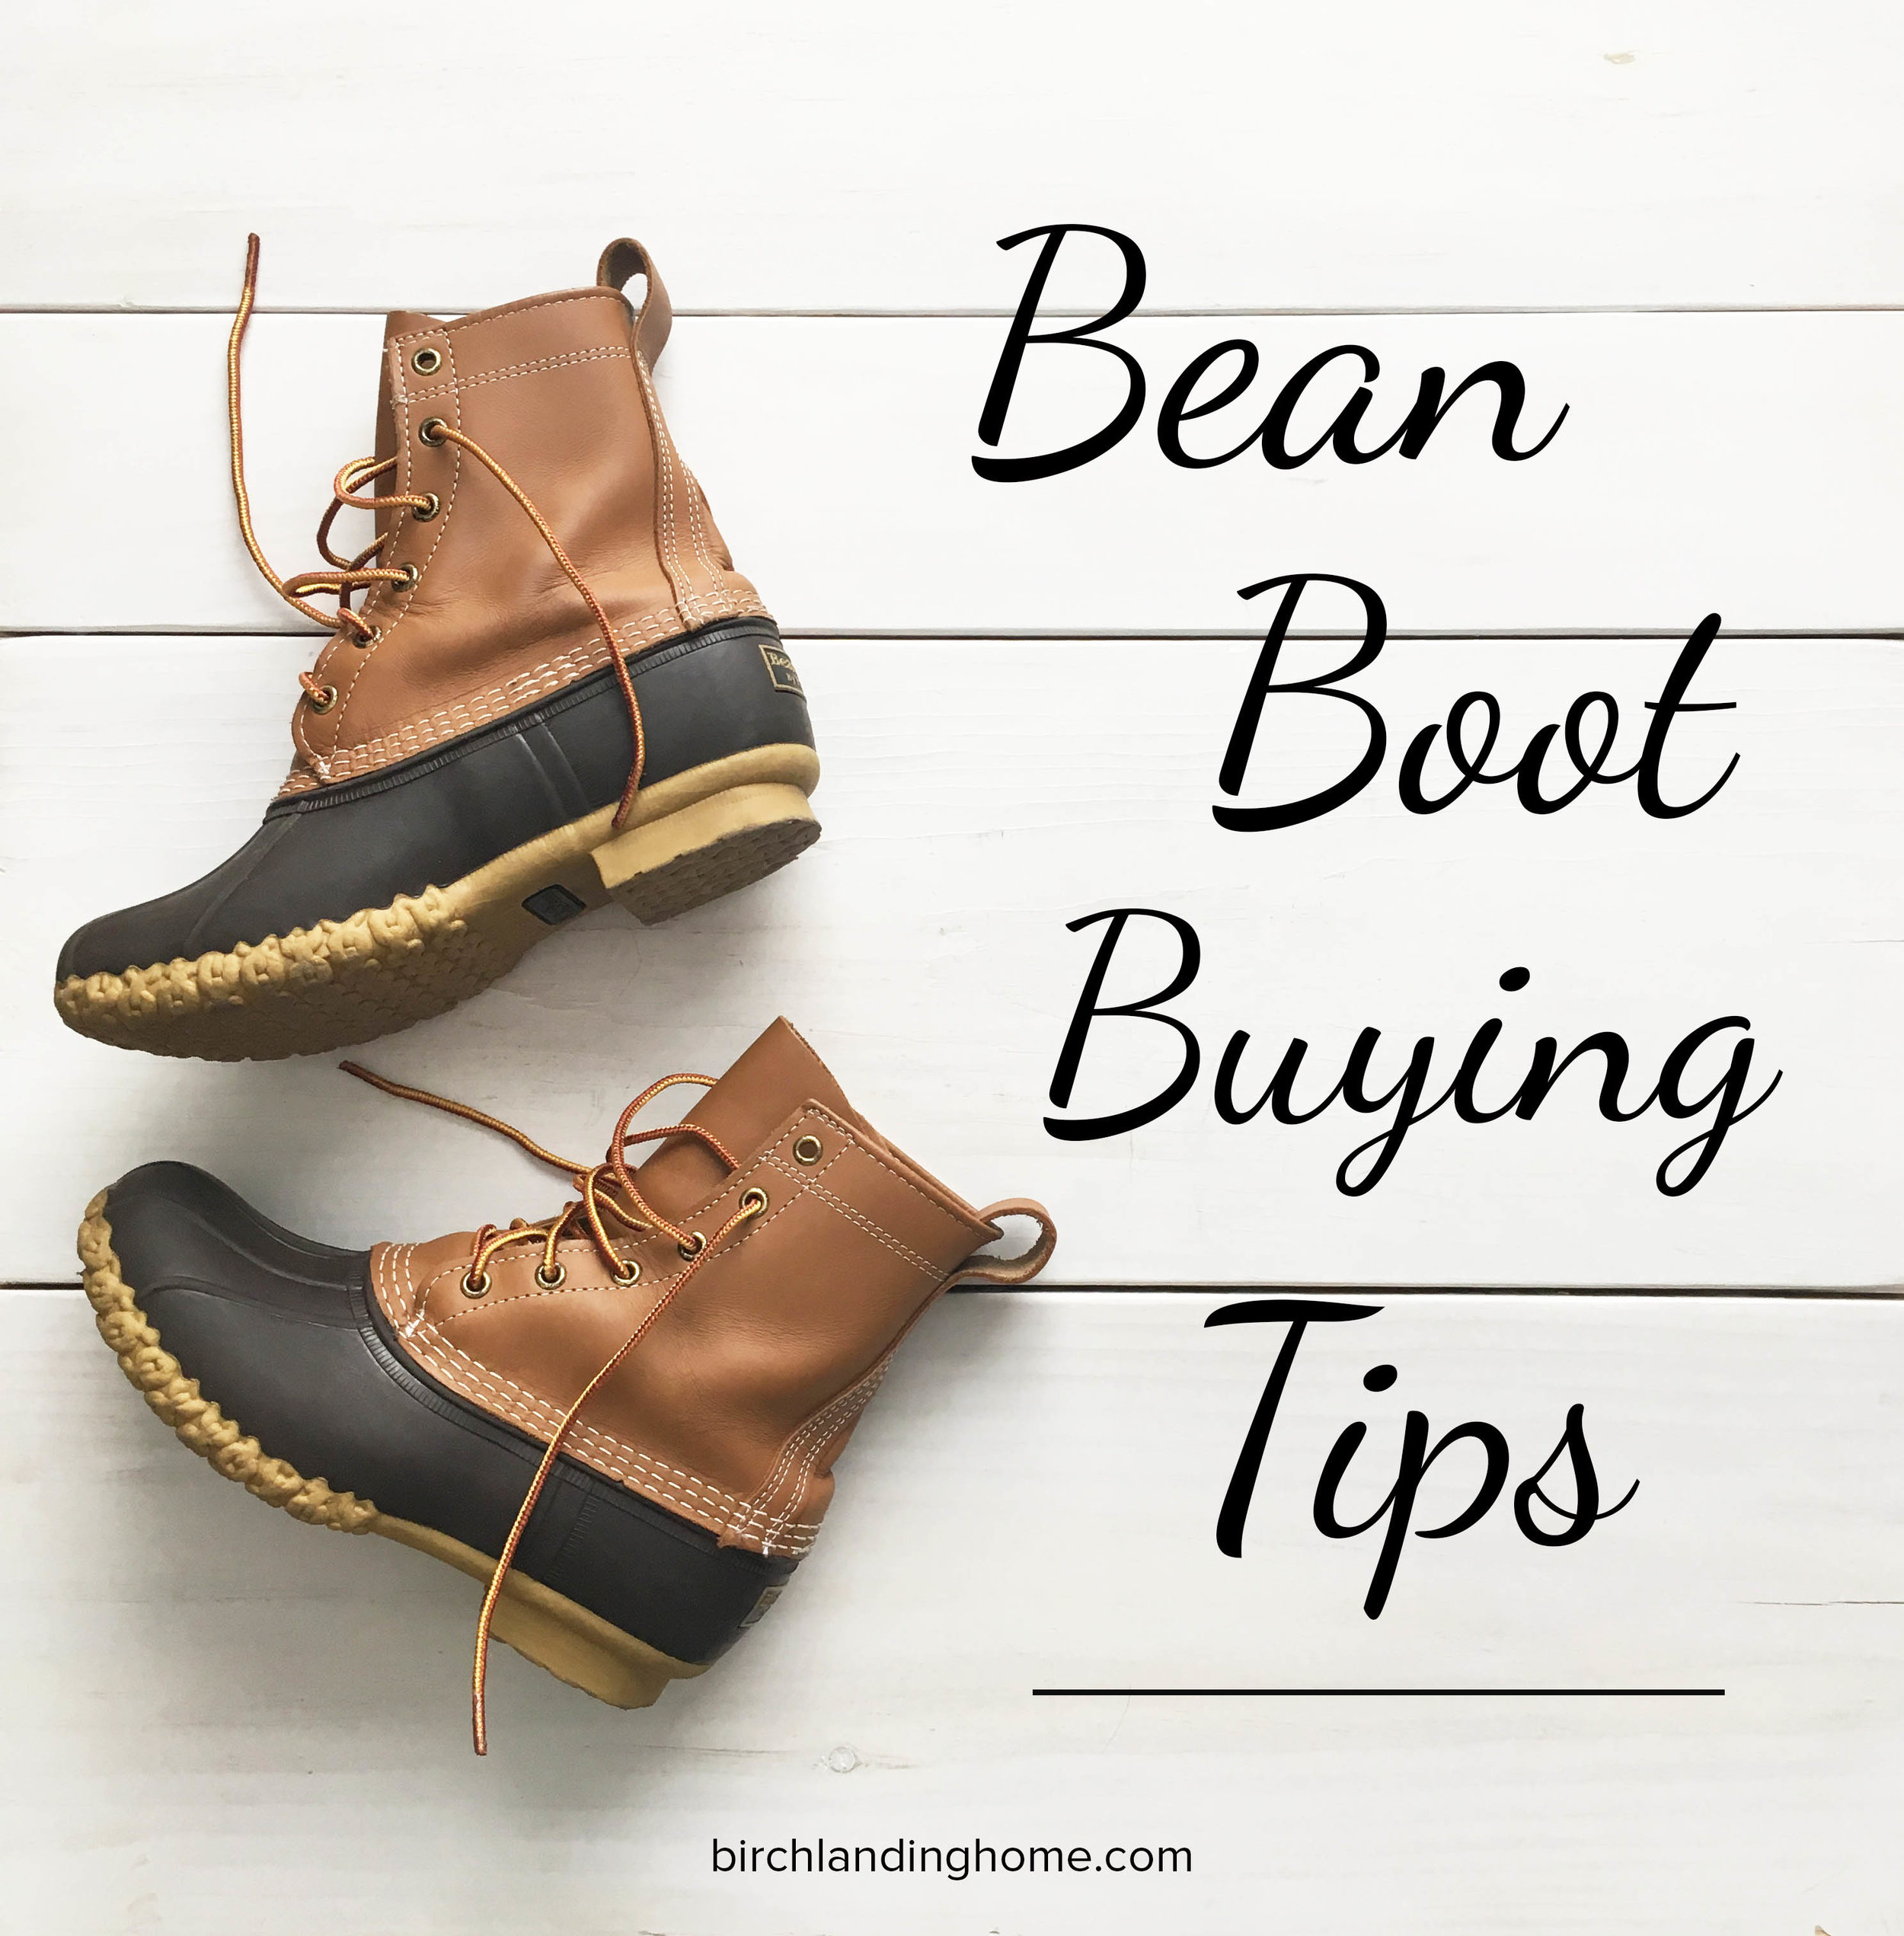 Tips on Buying Bean Boots